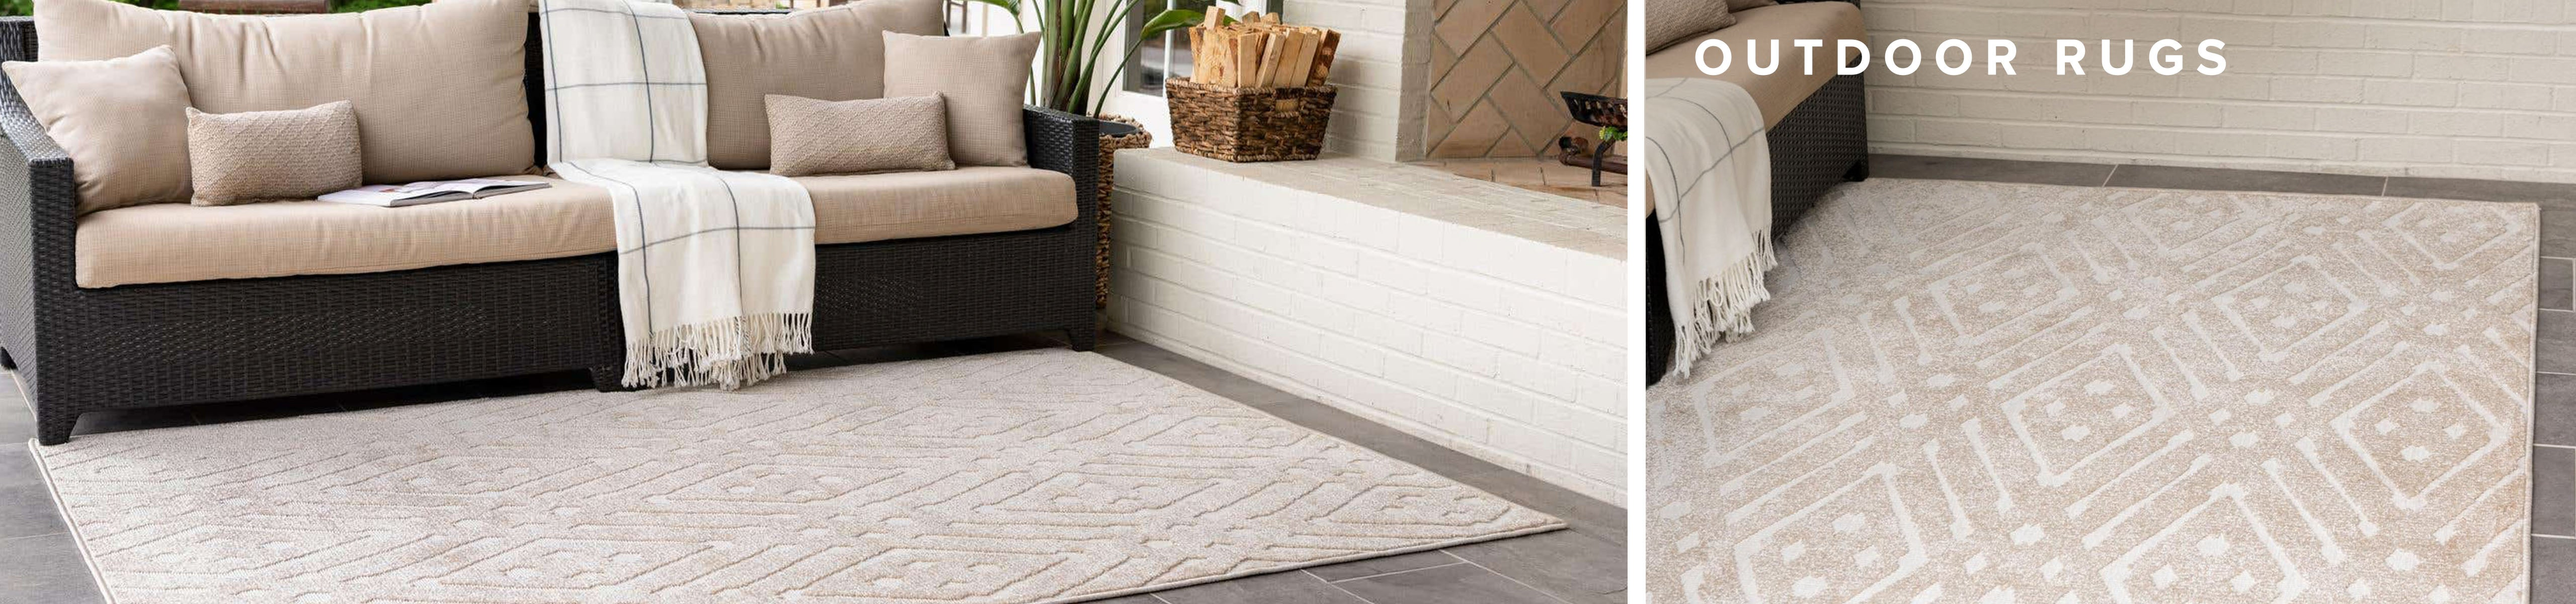 Outdoor Rugs | Rugs.com